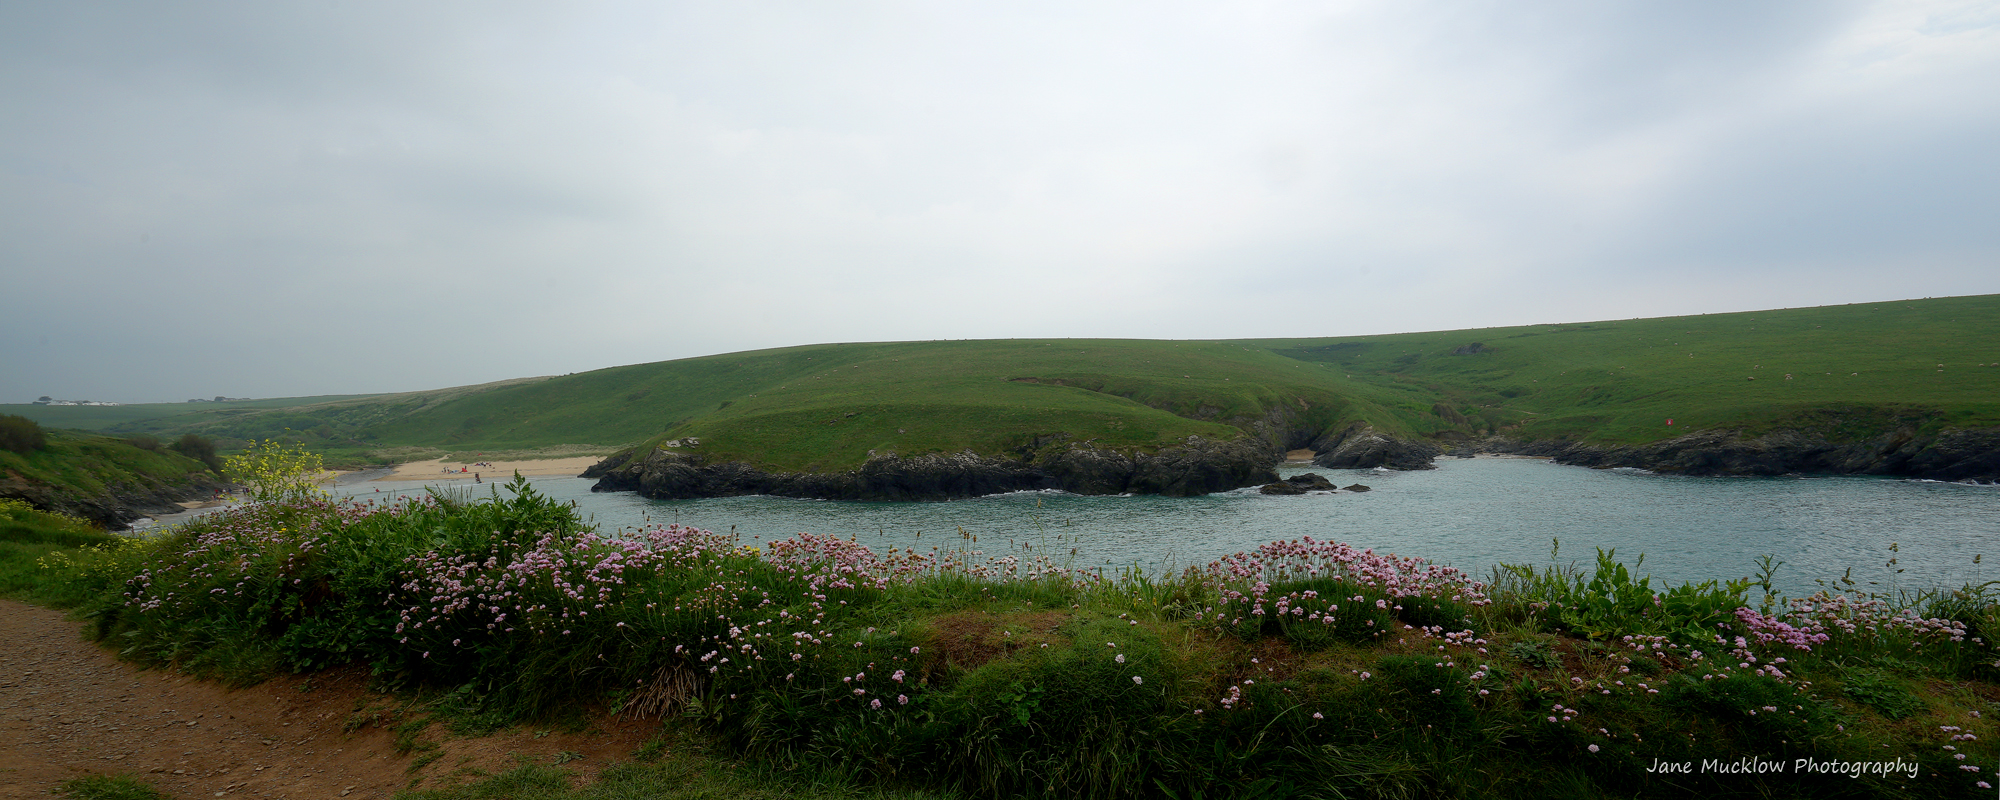 Photograph of Porth Joke, on the West Pentire headland just between Newquay and Perranporth, Cornwall, by Jane Mucklow